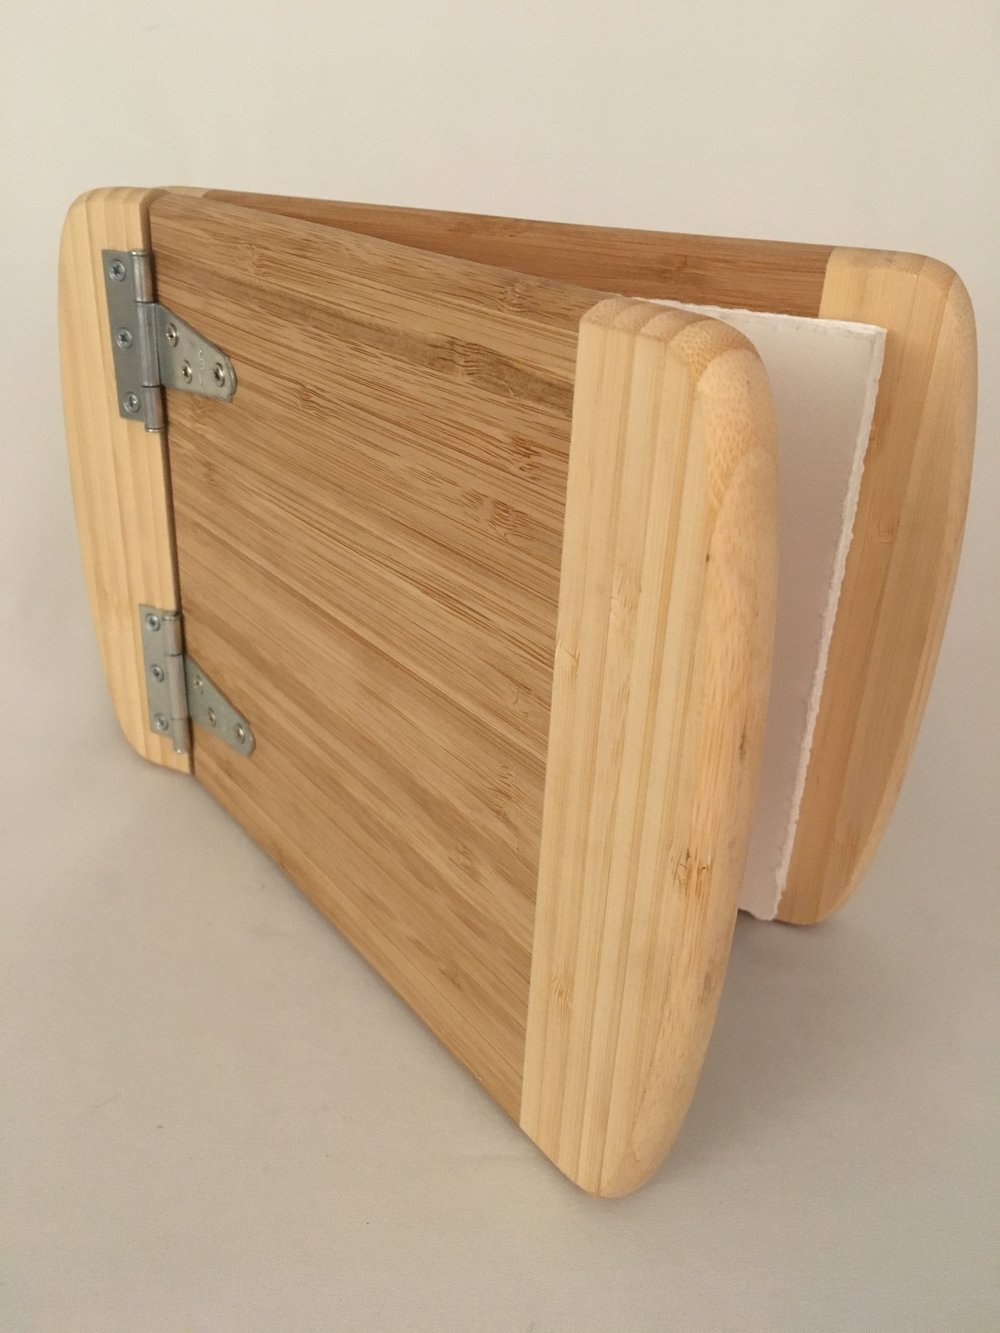 Cutting Boards inspired by Comfort